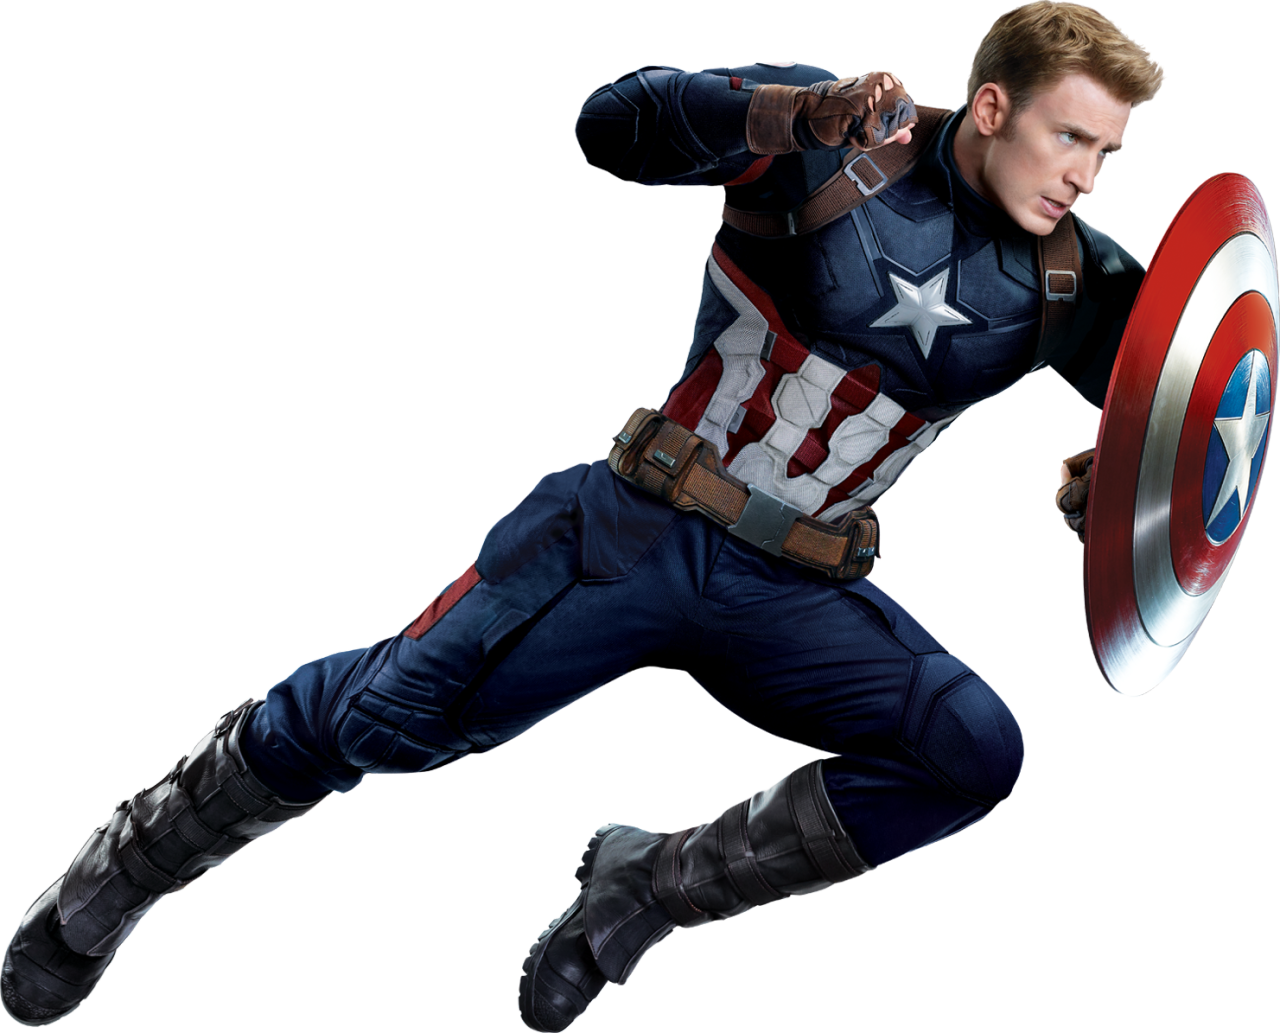 captain-america-civil-war-artwork-captain-america-1